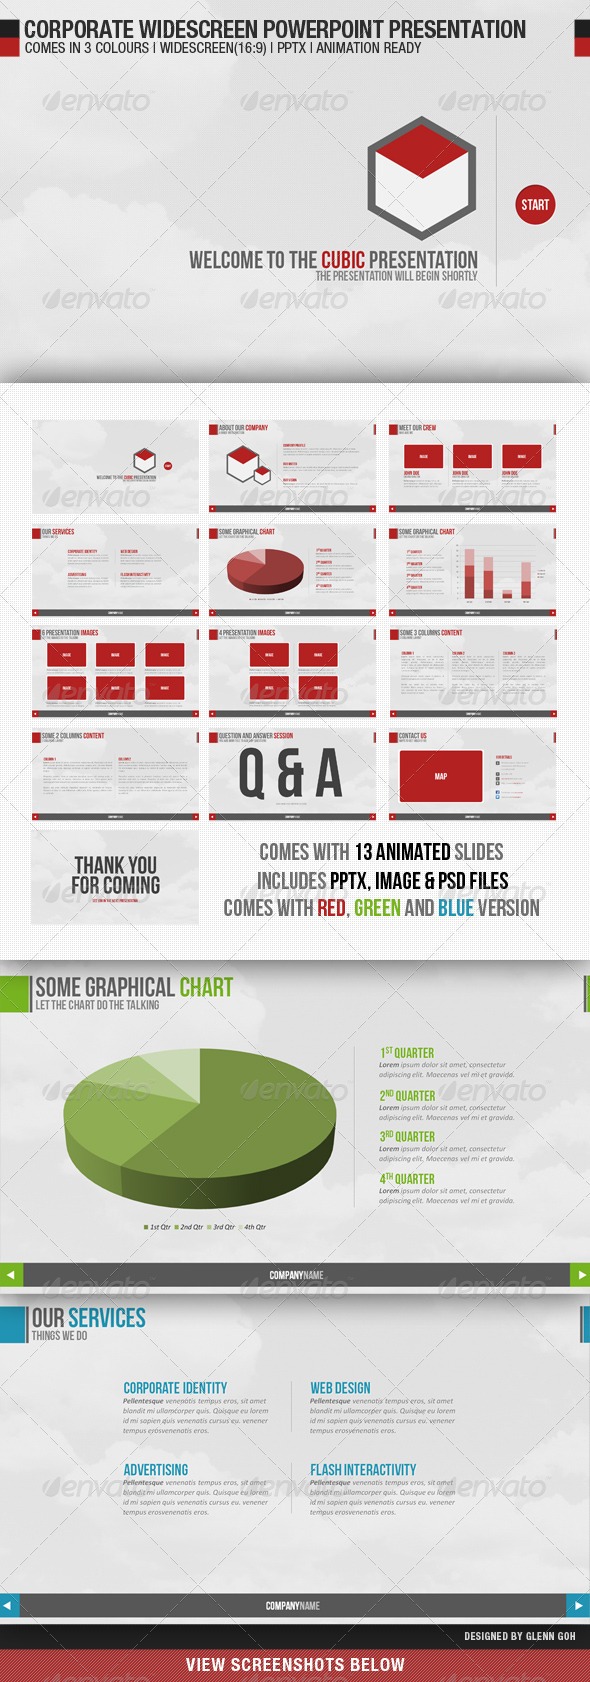 Corporate Widescreen Powerpoint Presentation - Creative Powerpoint Templates